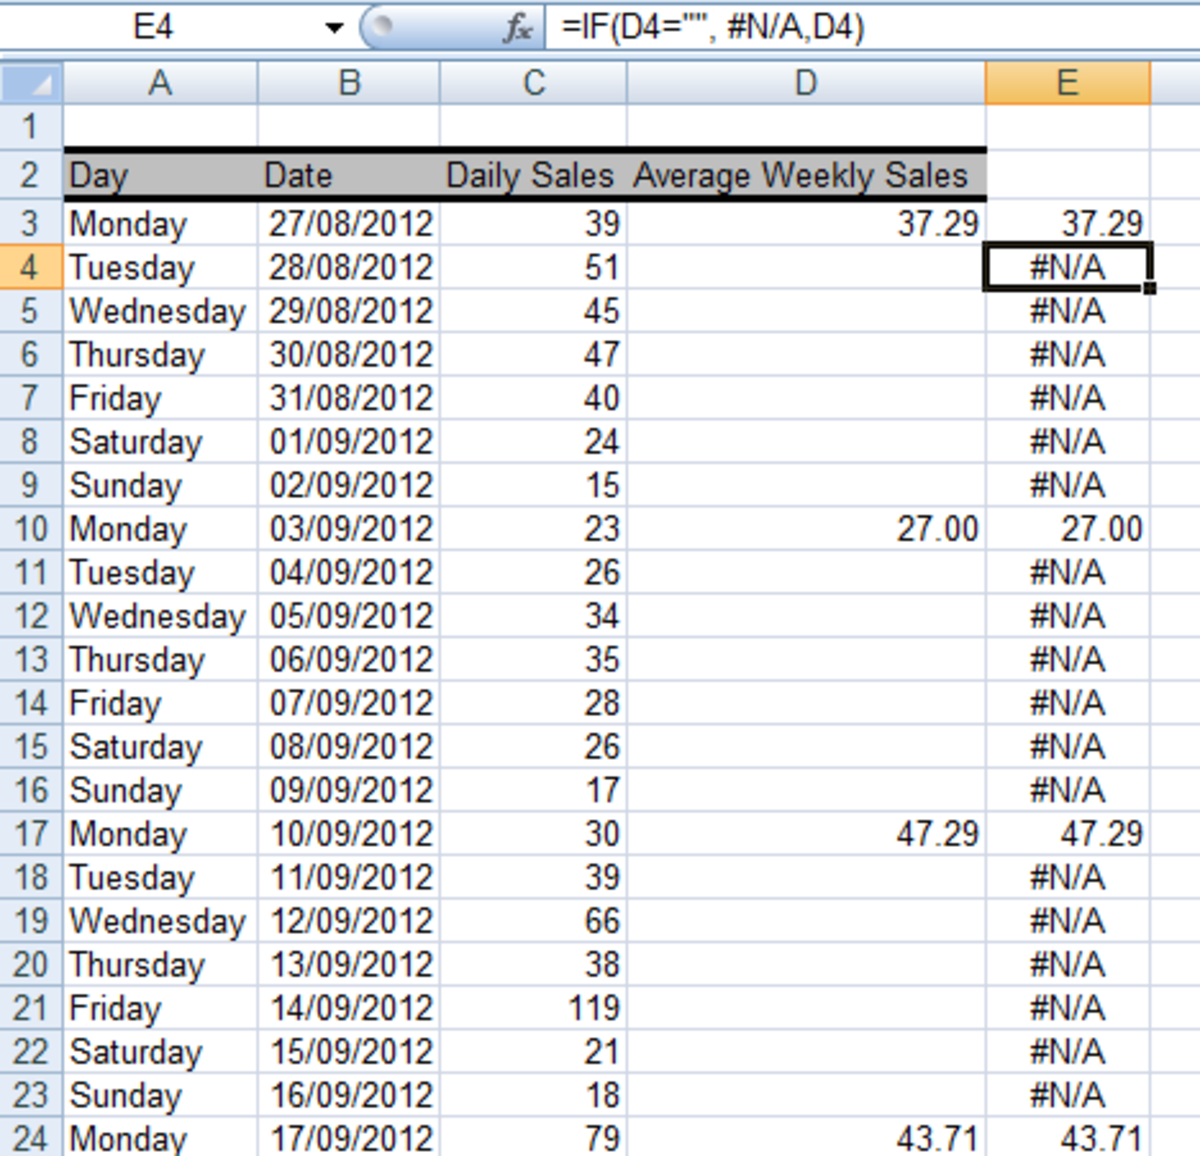 Ediblewildsus  Inspiring How To Get Excel  And  To Ignore Empty Cells In A Chart Or  With Lovable Using The If Function In A Formula To Convert Empty Cells To Na With Awesome Find Broken Links In Excel Also Excel Vba Floor In Addition Create Userform In Excel And Excel Trend Lines As Well As How To Do Present Value In Excel Additionally Invoice Templates For Excel From Turbofuturecom With Ediblewildsus  Lovable How To Get Excel  And  To Ignore Empty Cells In A Chart Or  With Awesome Using The If Function In A Formula To Convert Empty Cells To Na And Inspiring Find Broken Links In Excel Also Excel Vba Floor In Addition Create Userform In Excel From Turbofuturecom